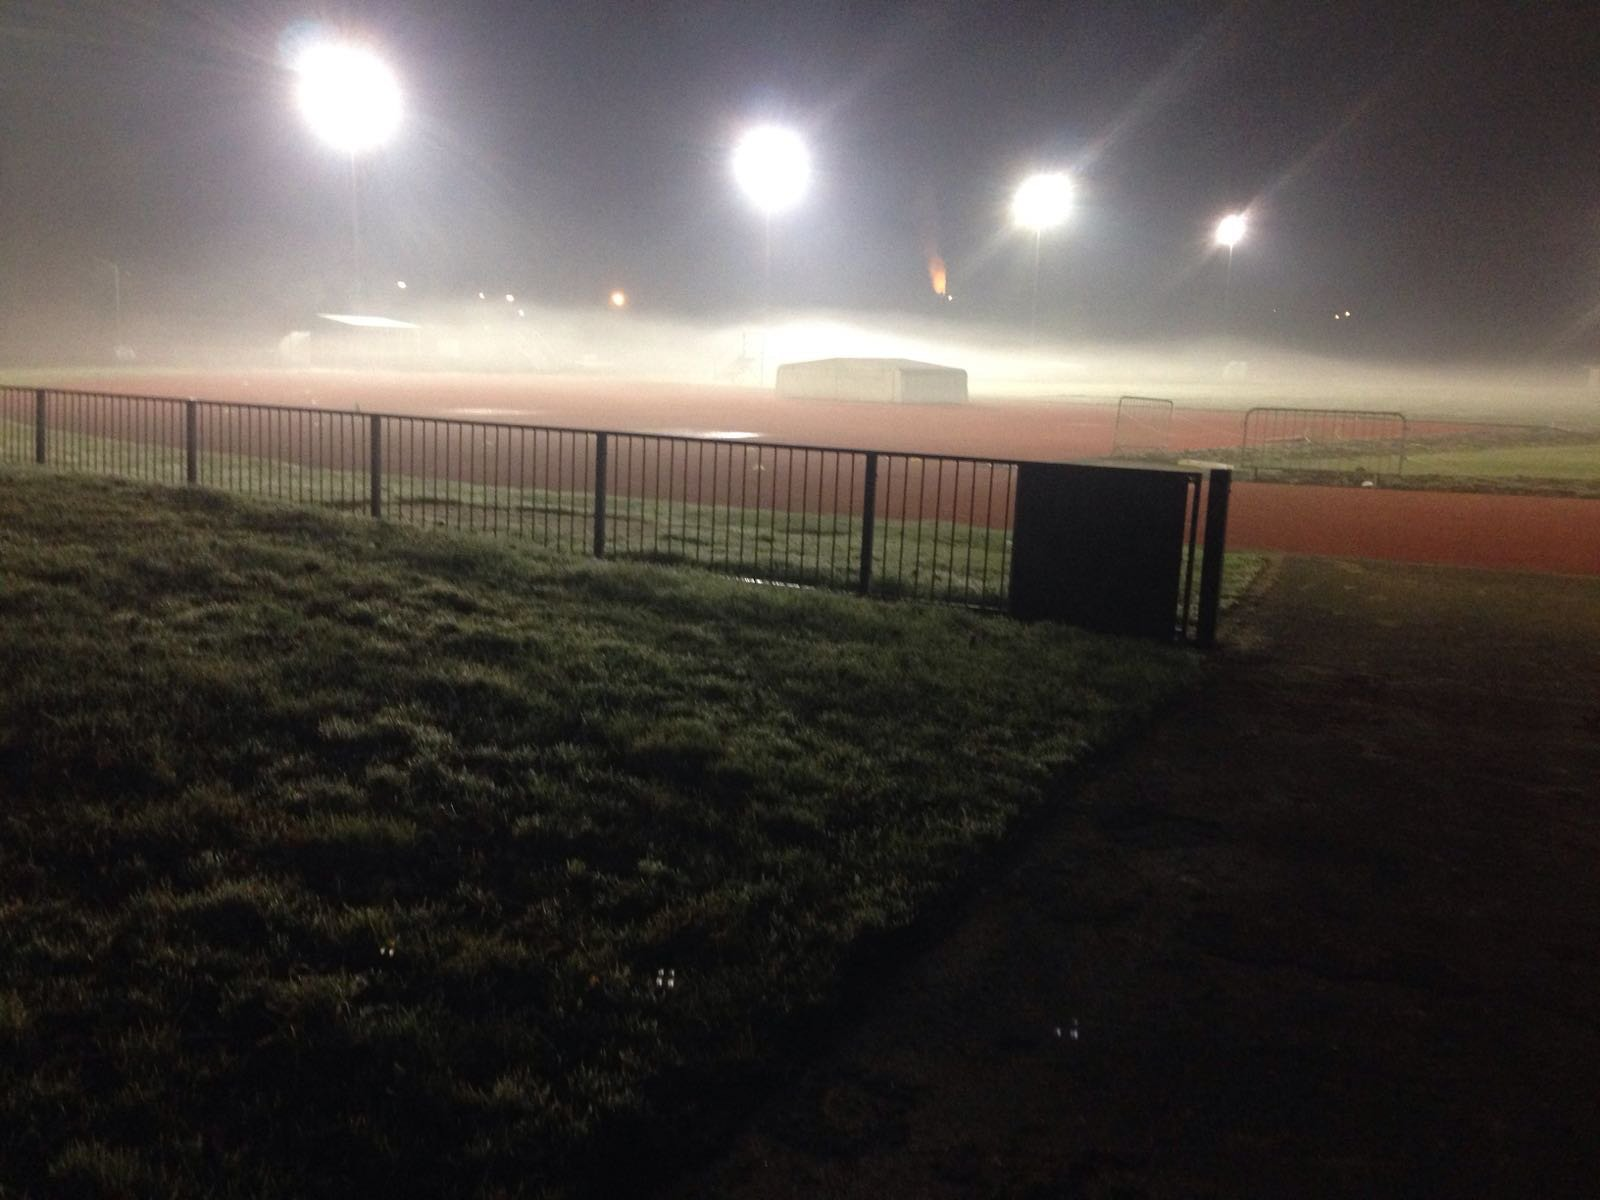 The track on a cold foggy evening.